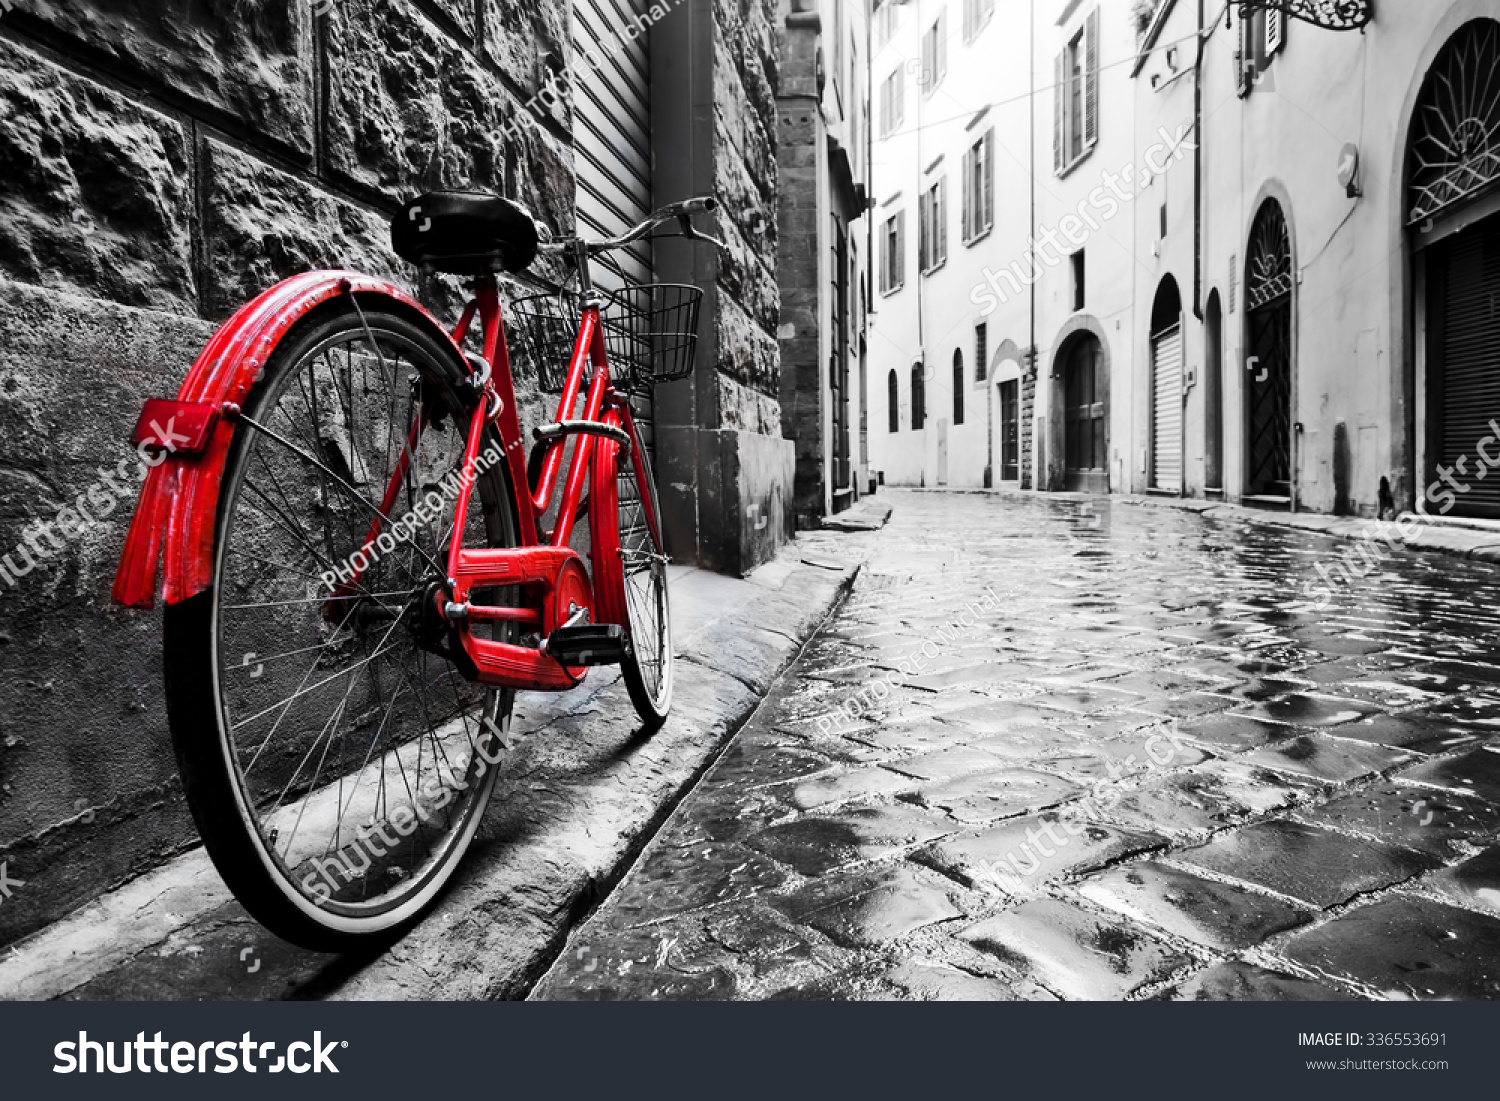 retro vintage red bike on cobblestone stock photo 336553691 shutterstock. Black Bedroom Furniture Sets. Home Design Ideas